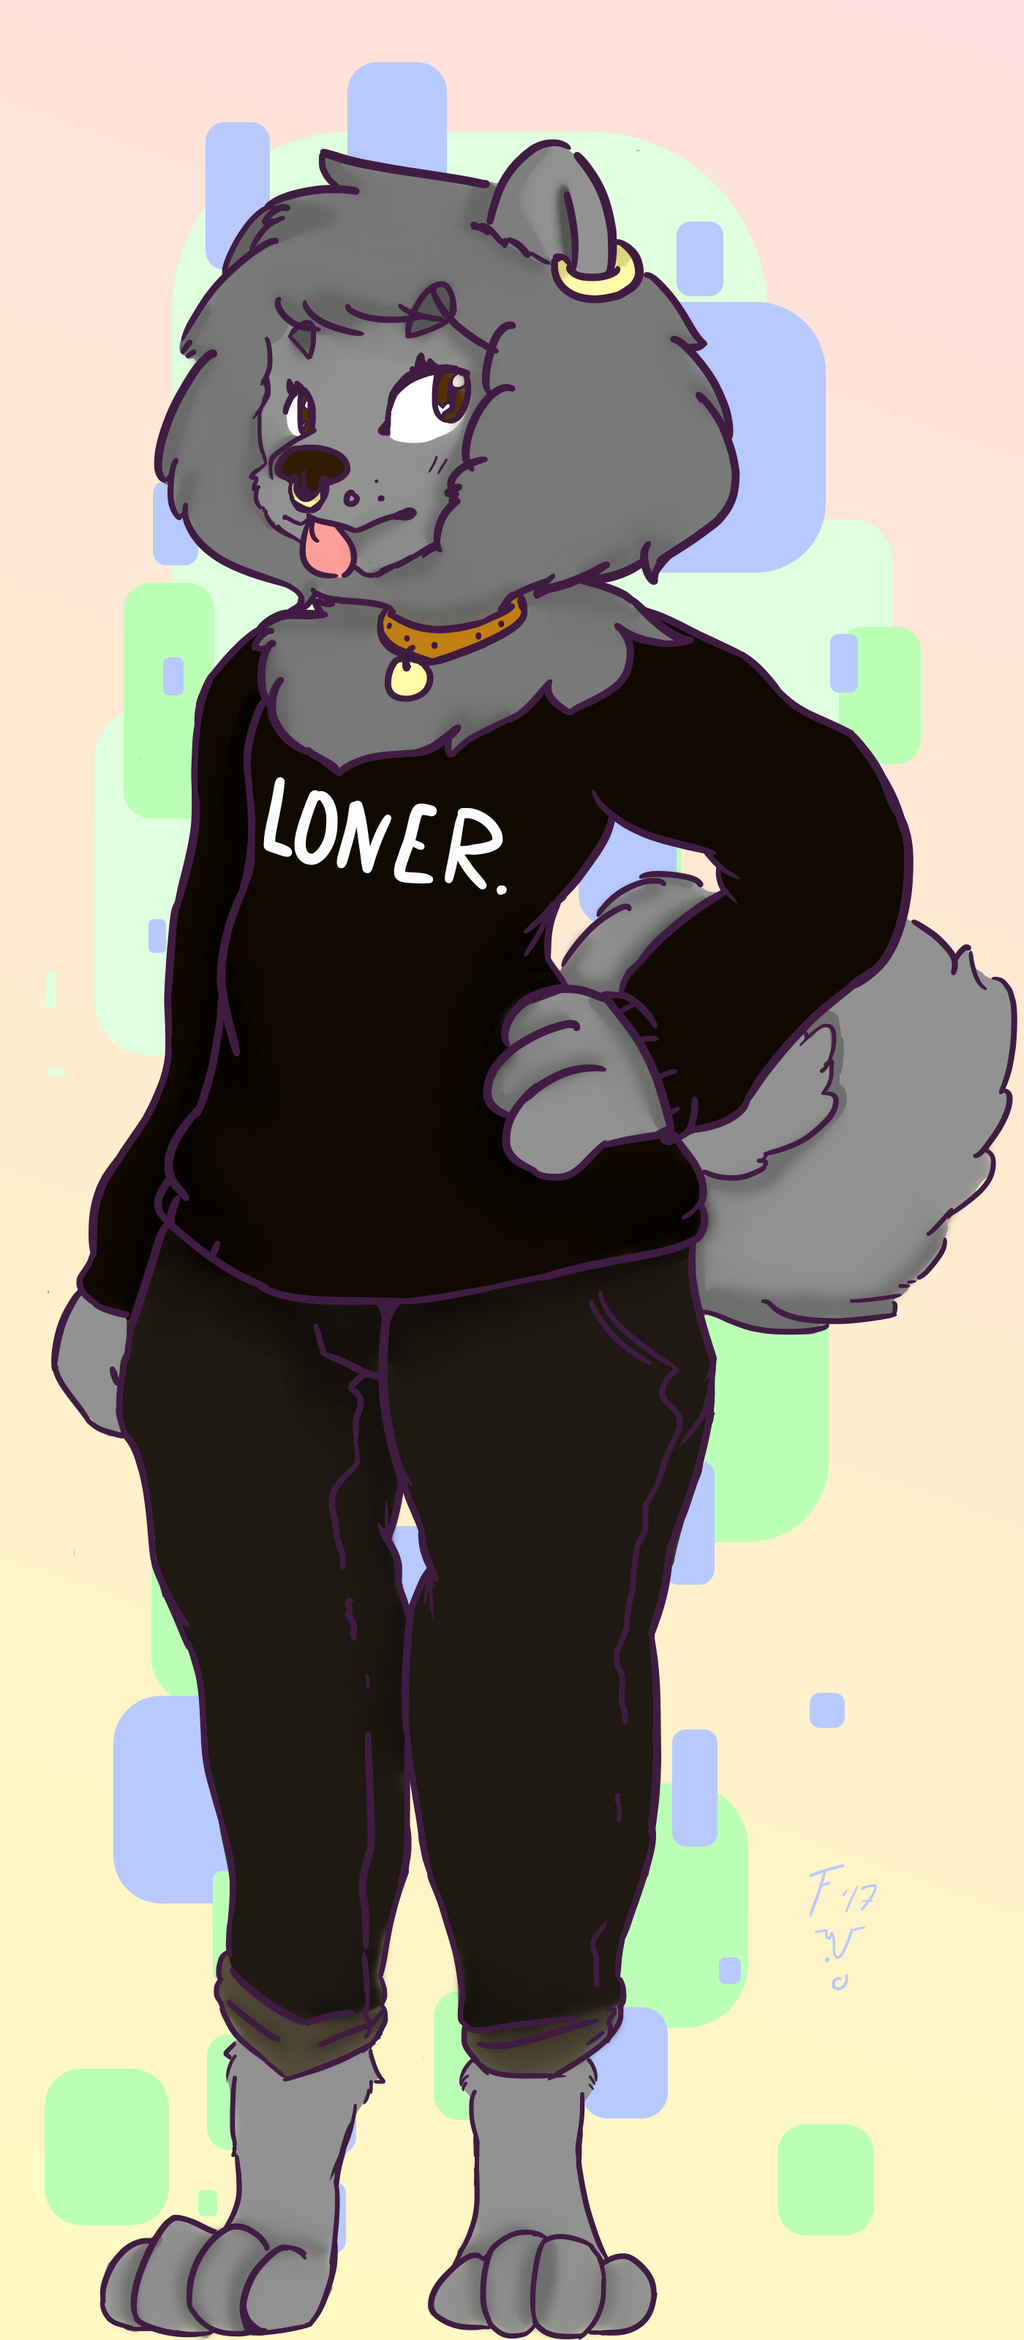 Most recent image: Chow Chow~!